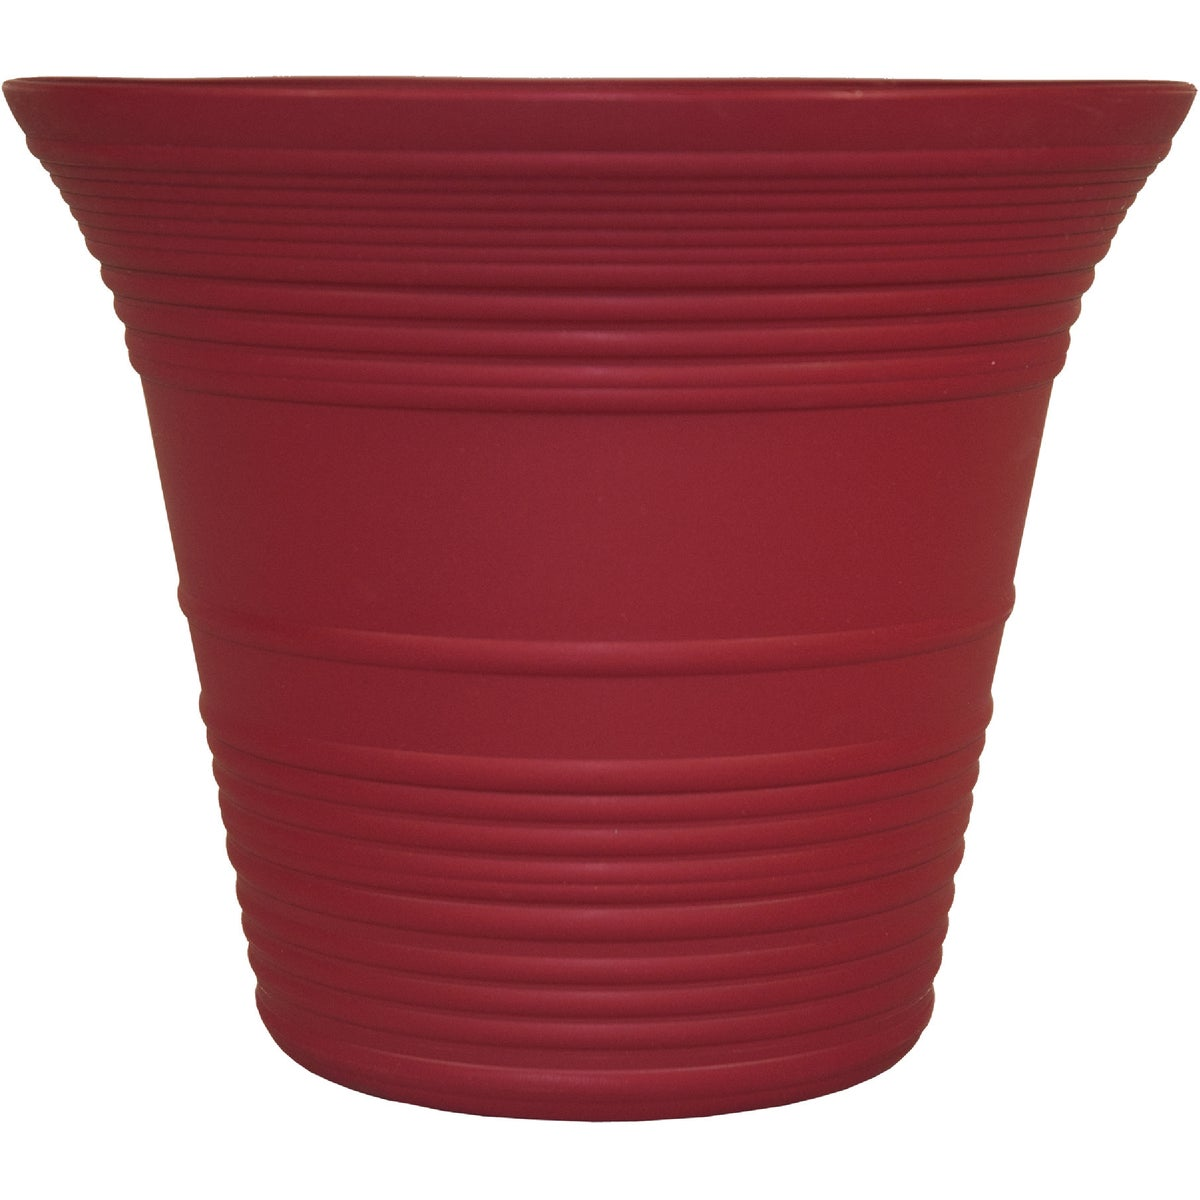 "9"" RED SEDONA PLNTER - SEA09001F85 by Myers Industries Inc"